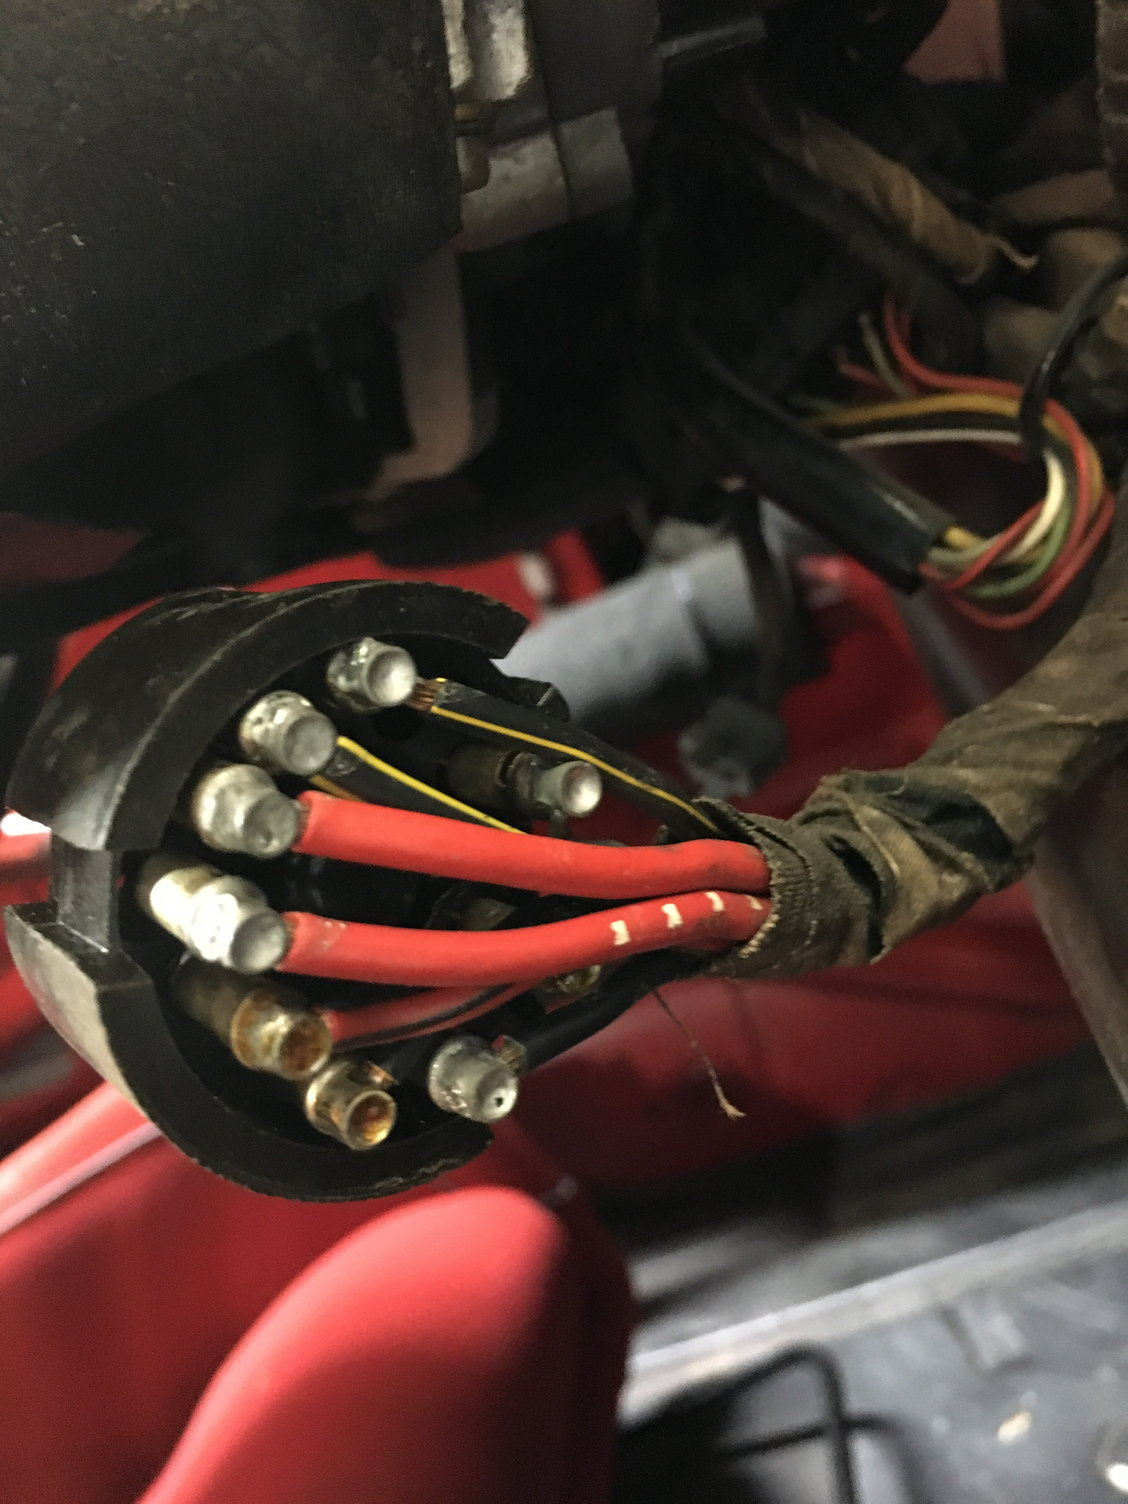 ignition switch wiring, what color goes to what? rennlist